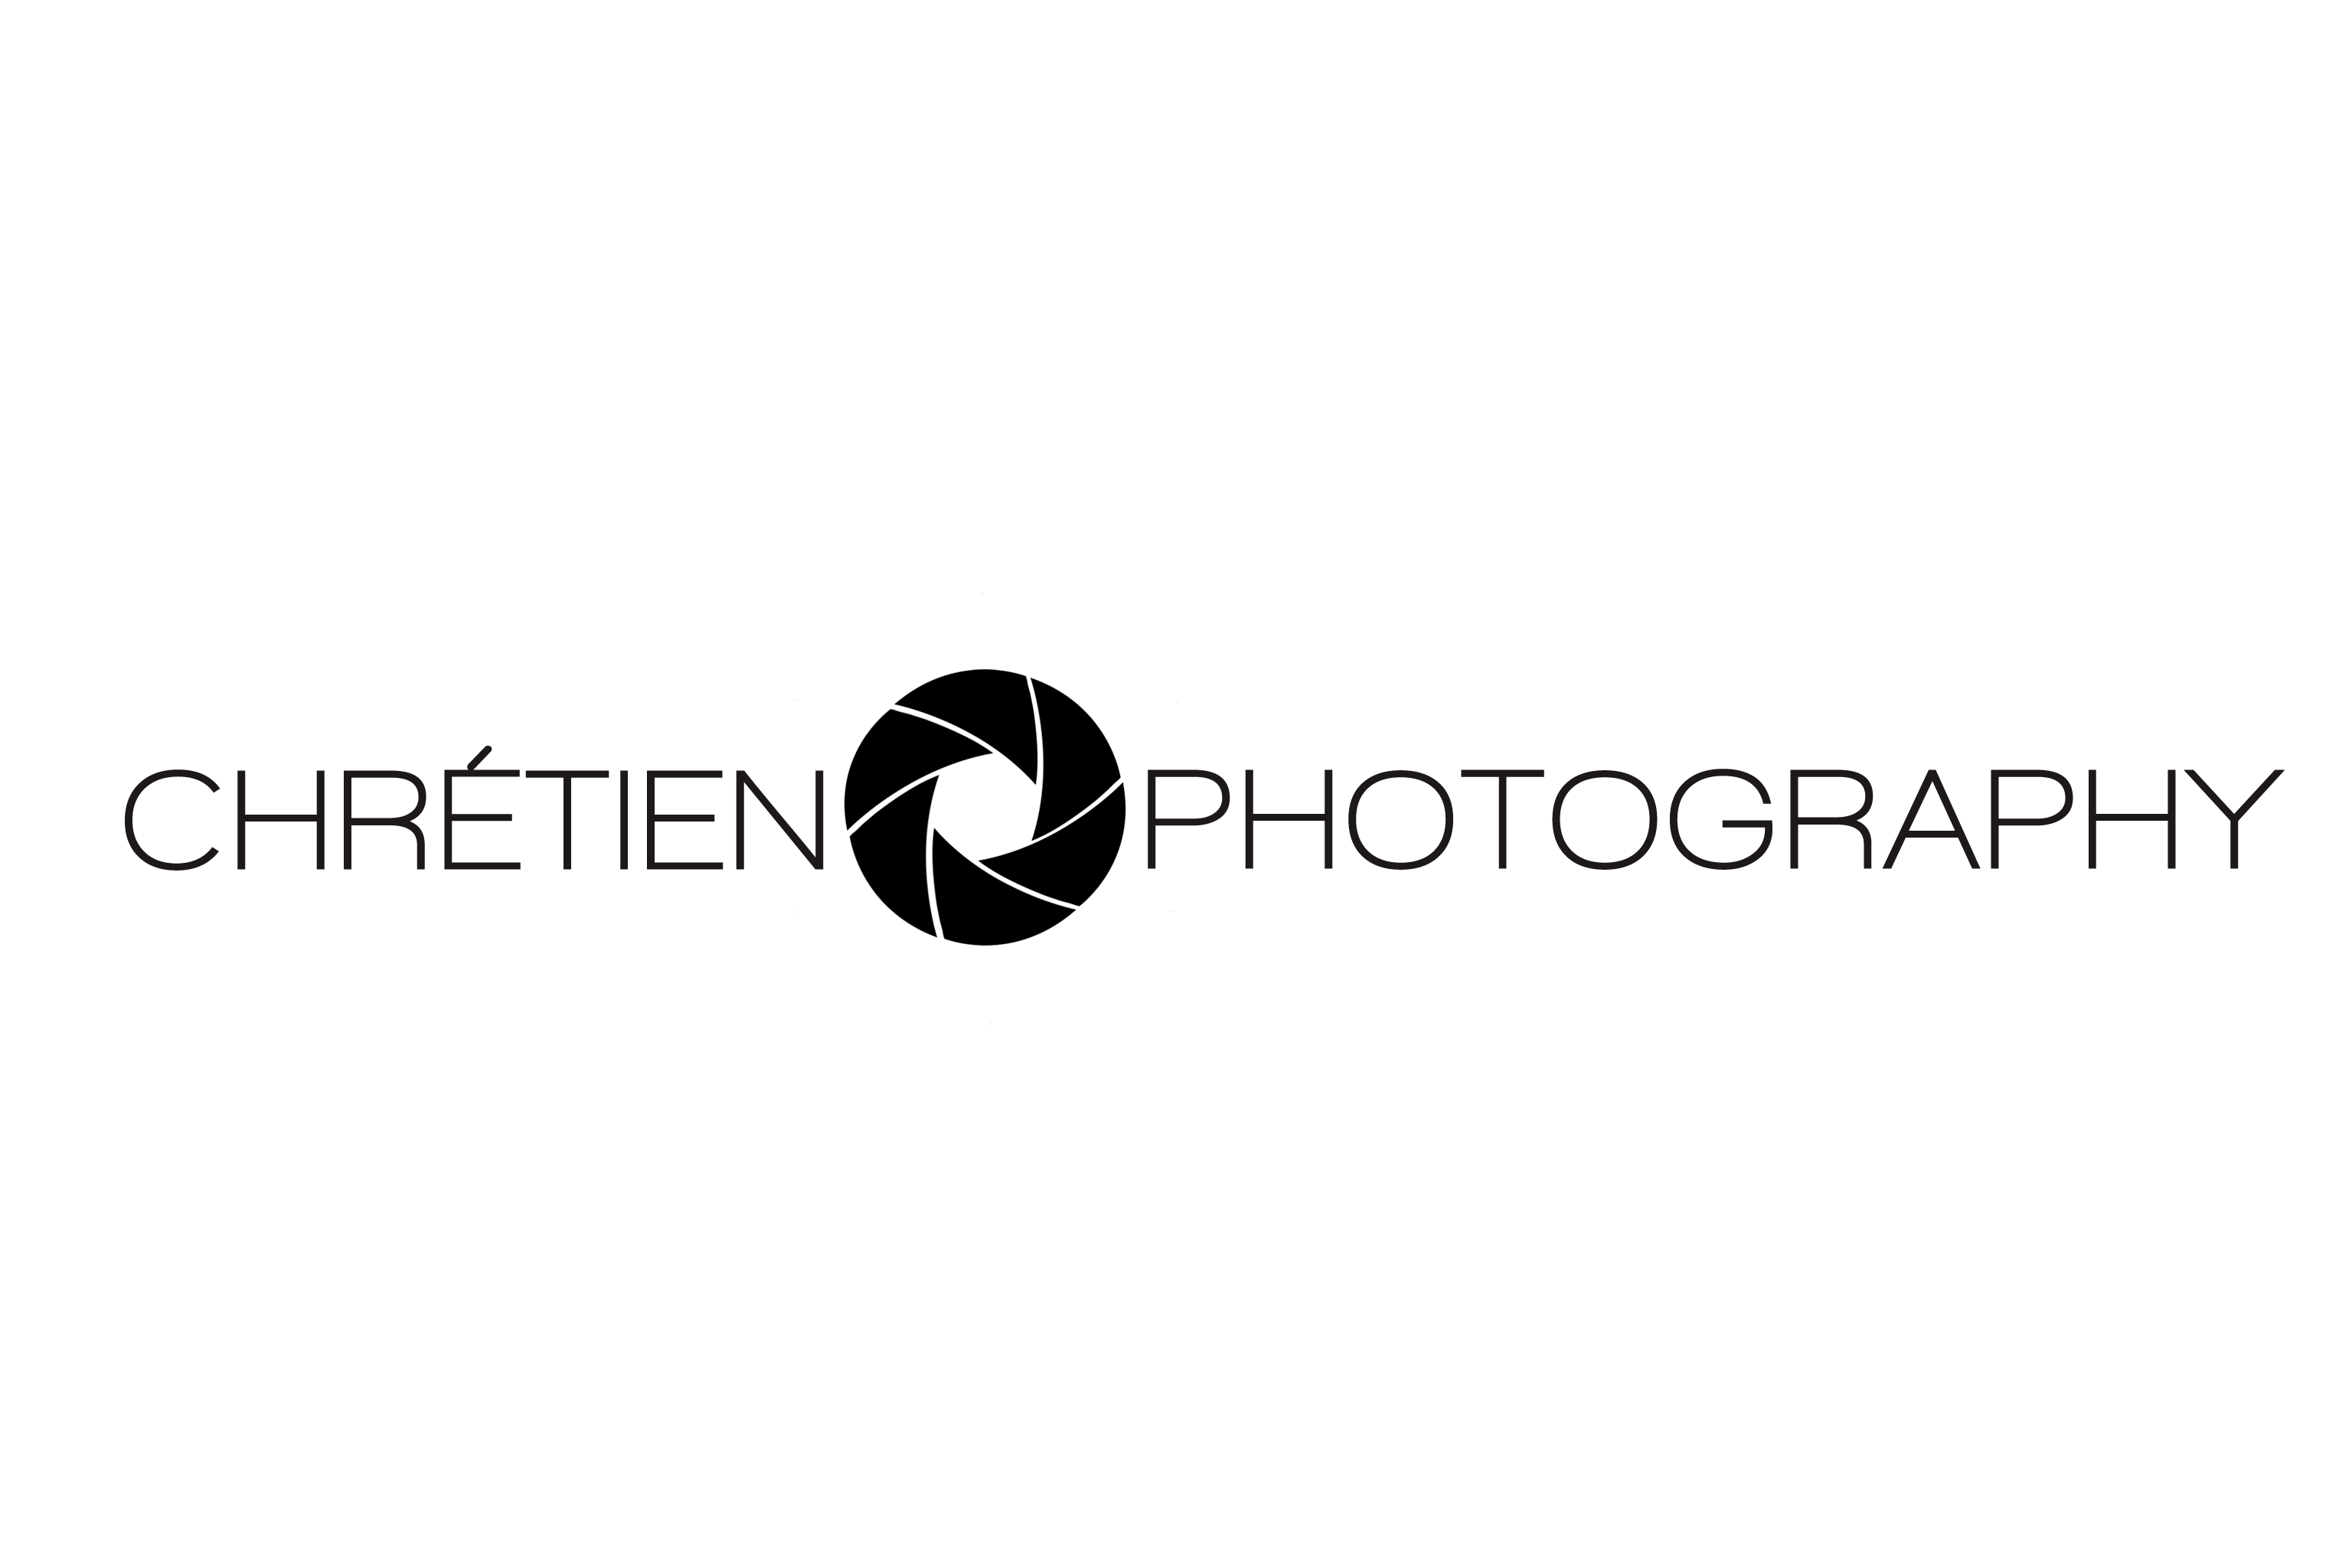 photography logo, logo for photography watermark the tech game #25087